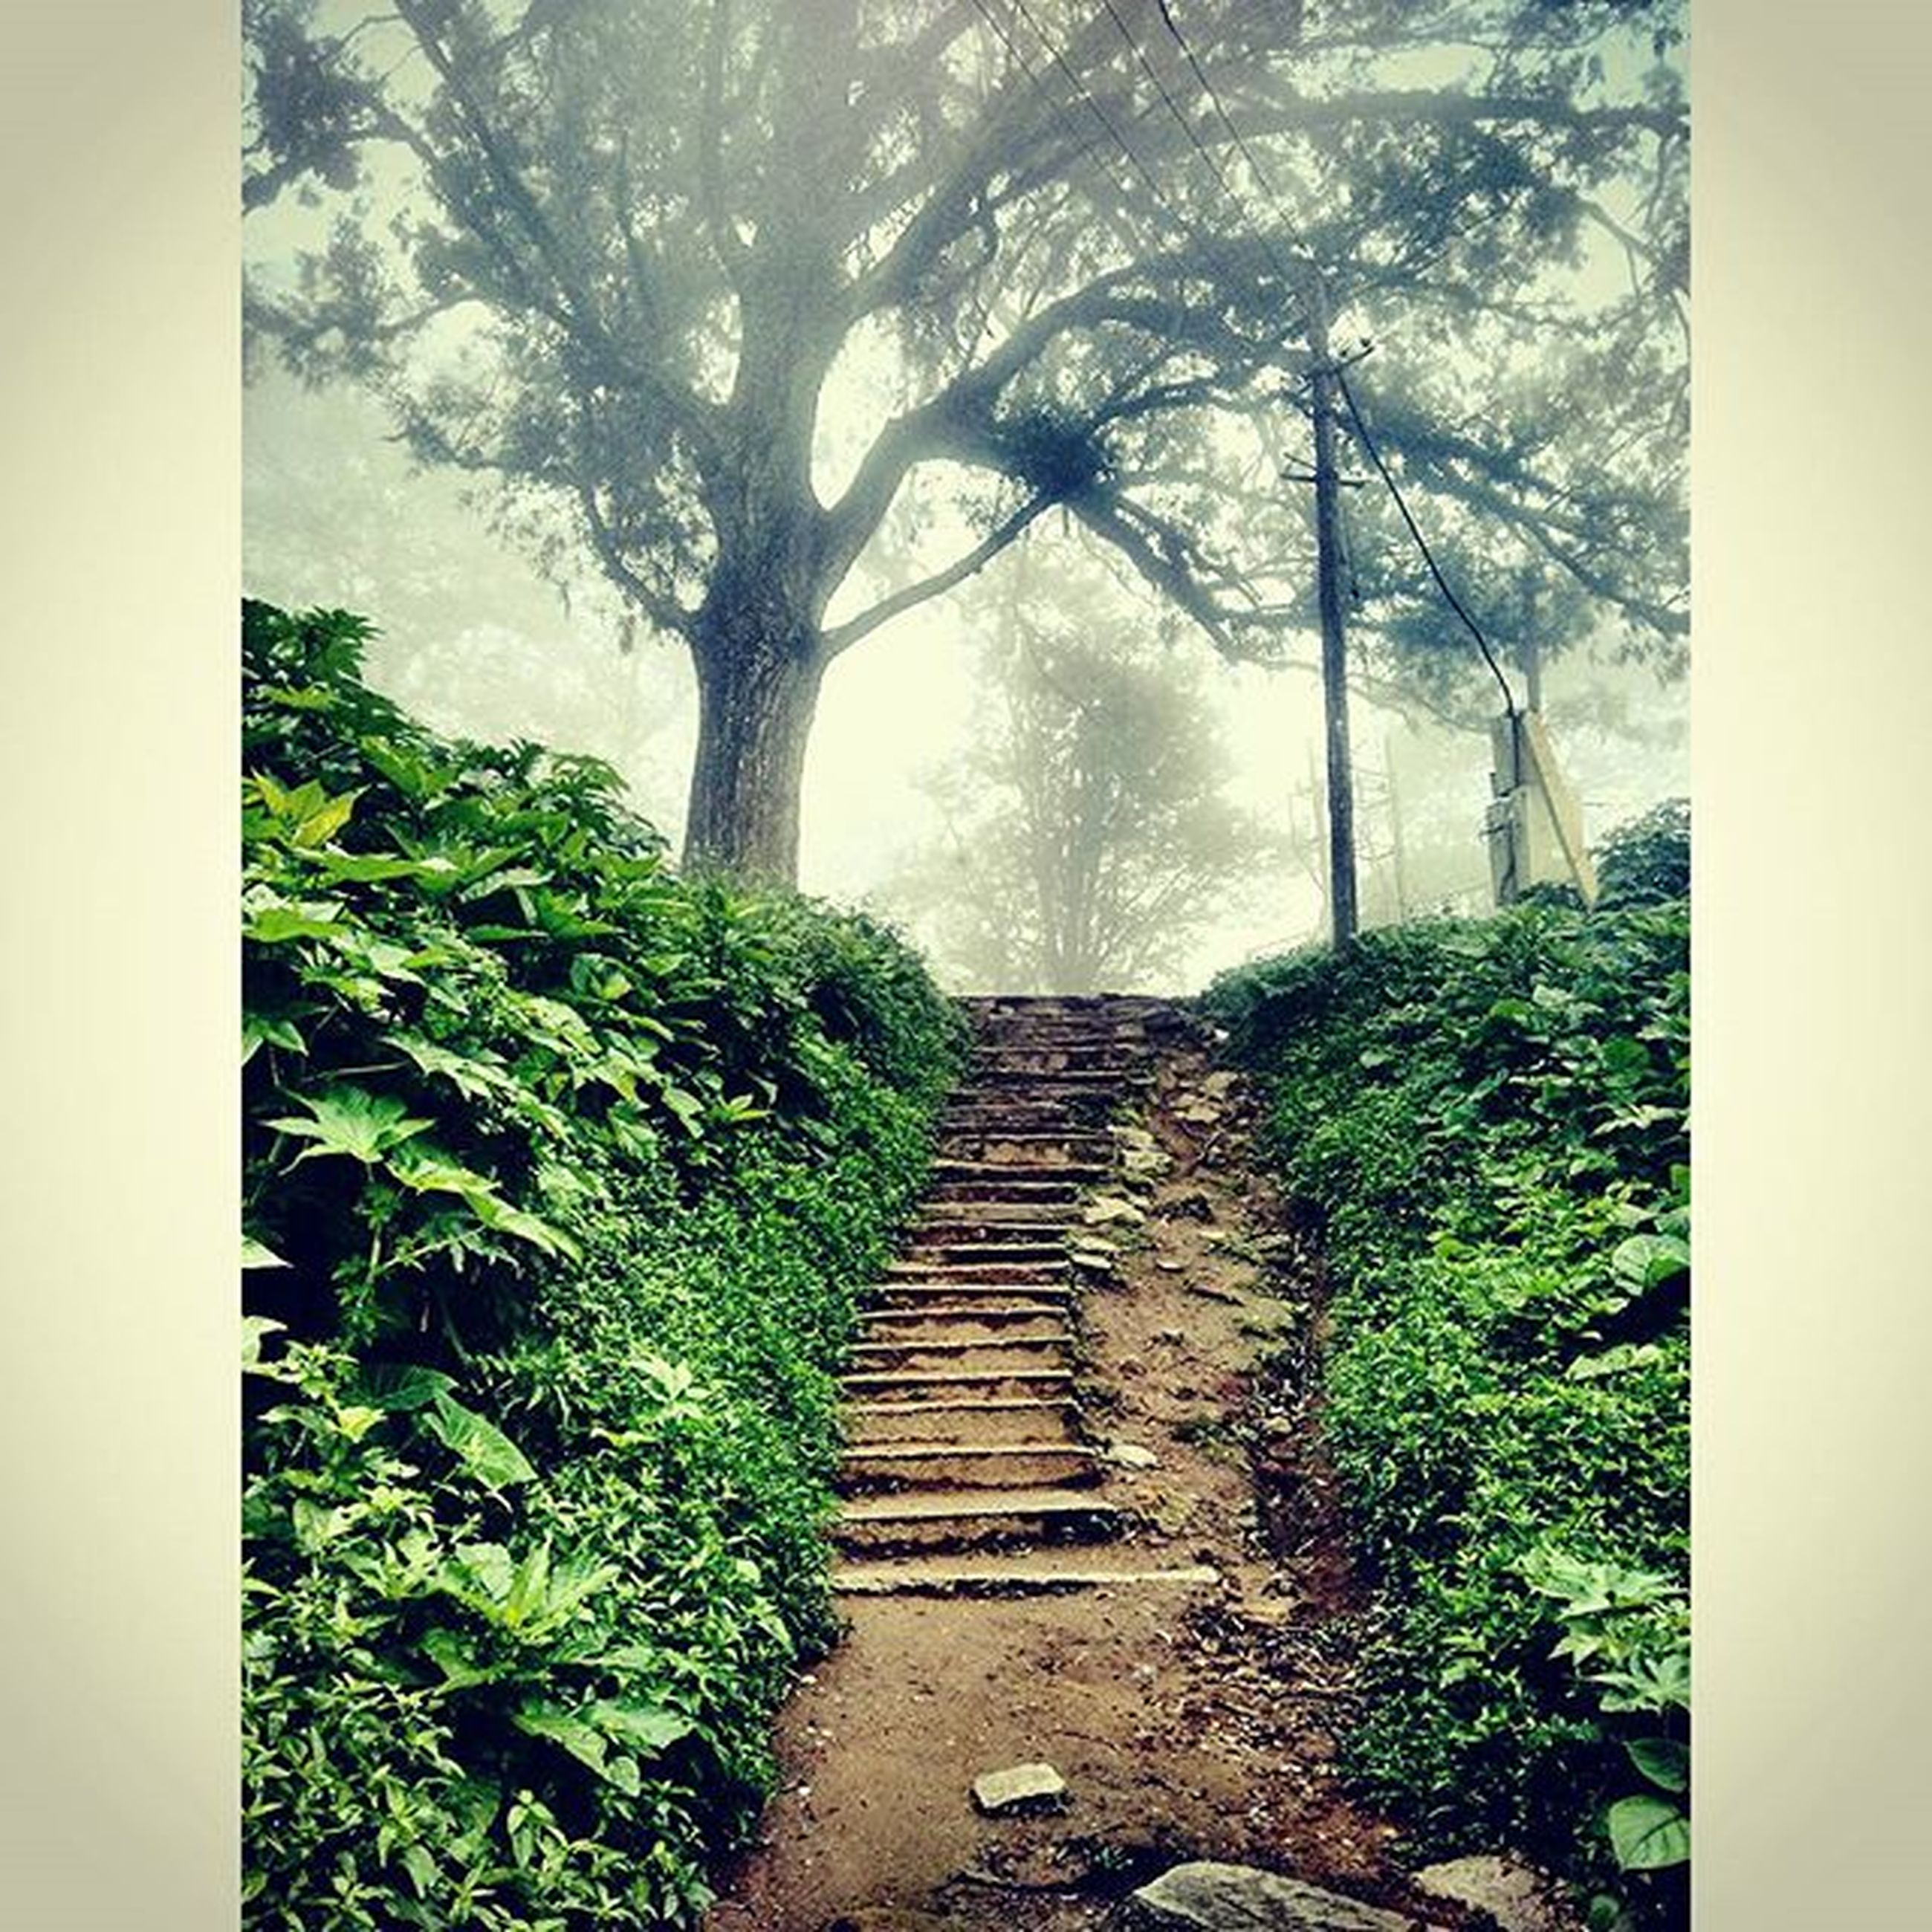 the way forward, tree, plant, narrow, steps, growth, tranquility, diminishing perspective, railing, nature, vanishing point, walkway, footpath, pathway, tranquil scene, forest, green color, steps and staircases, day, leading